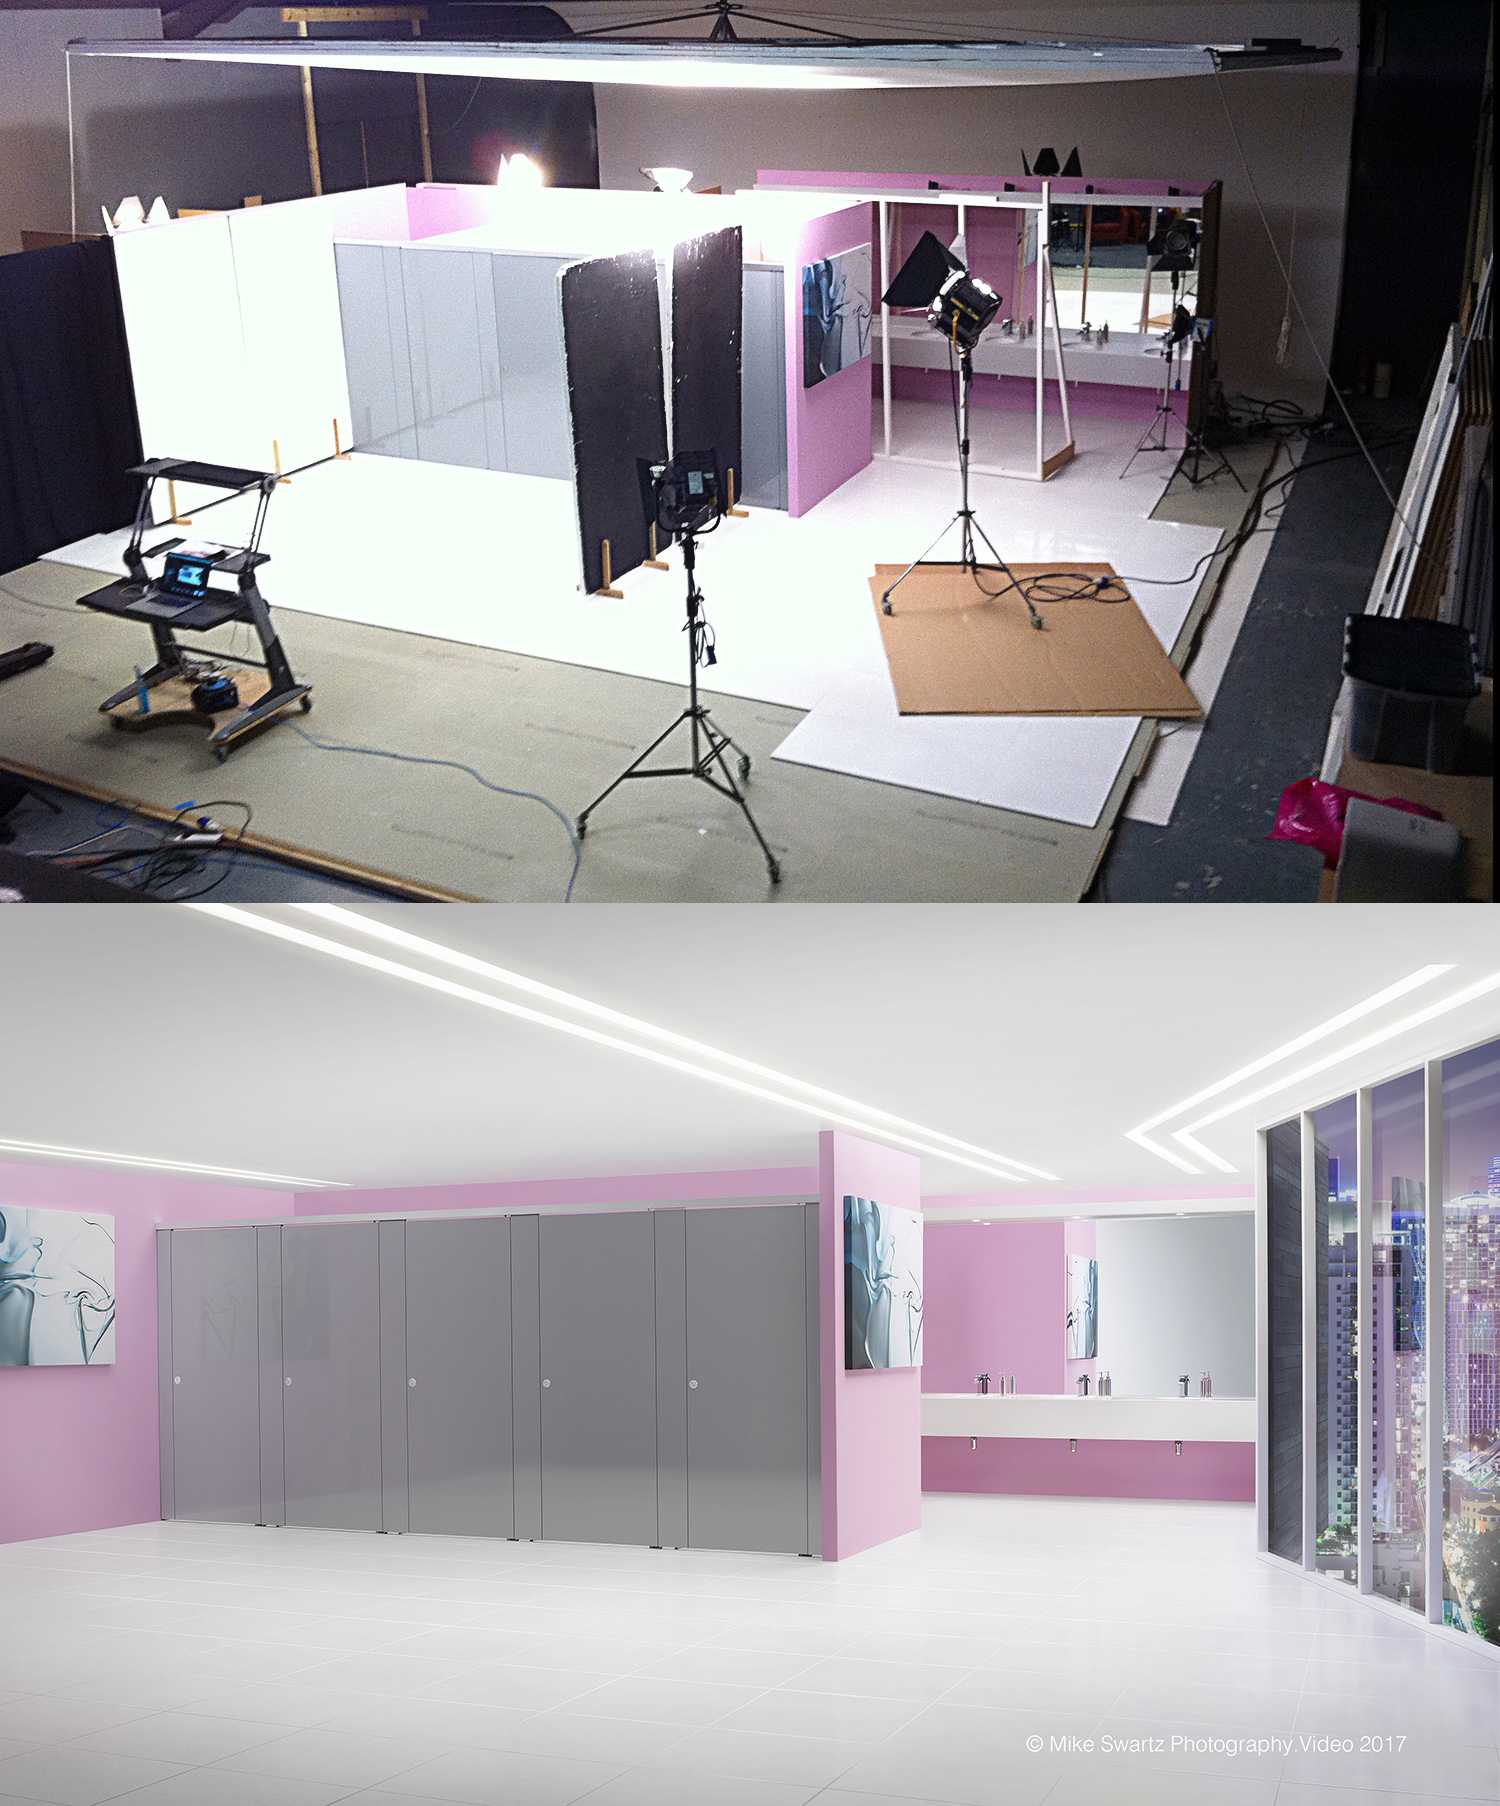 Set photography, video and CGI where carried out in completion of this and three other sets within this shoot. Two studios where used, building and shooting back to back. CGI was also used in the execution of these projects.